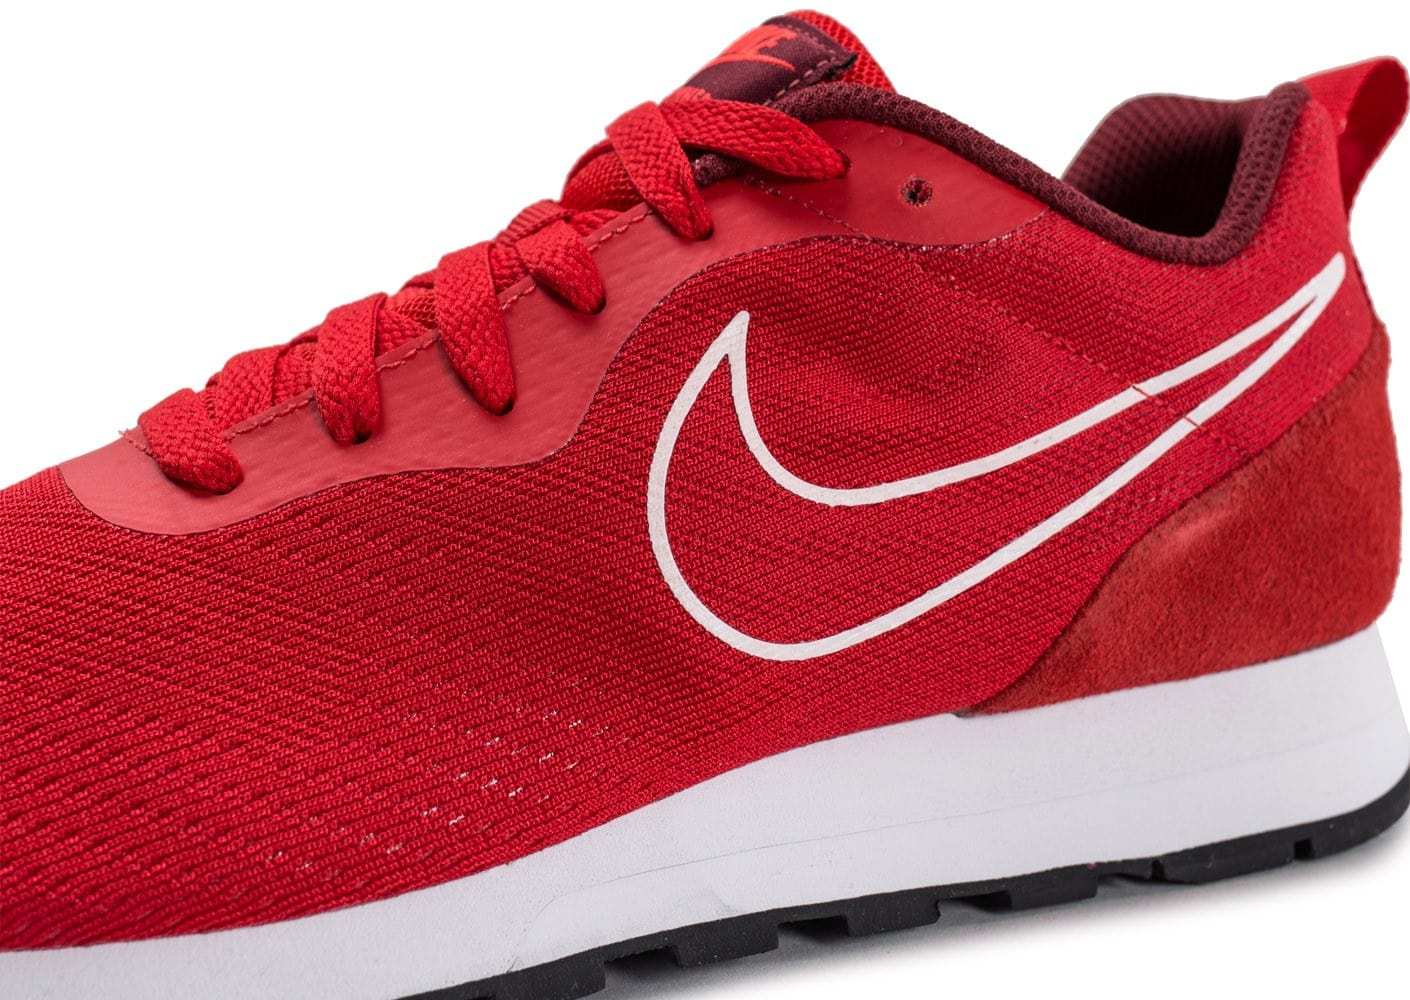 Breathe Rouge Md Runner Baskets Nike Homme Chaussures Chausport 2 e9YWD2EHbI